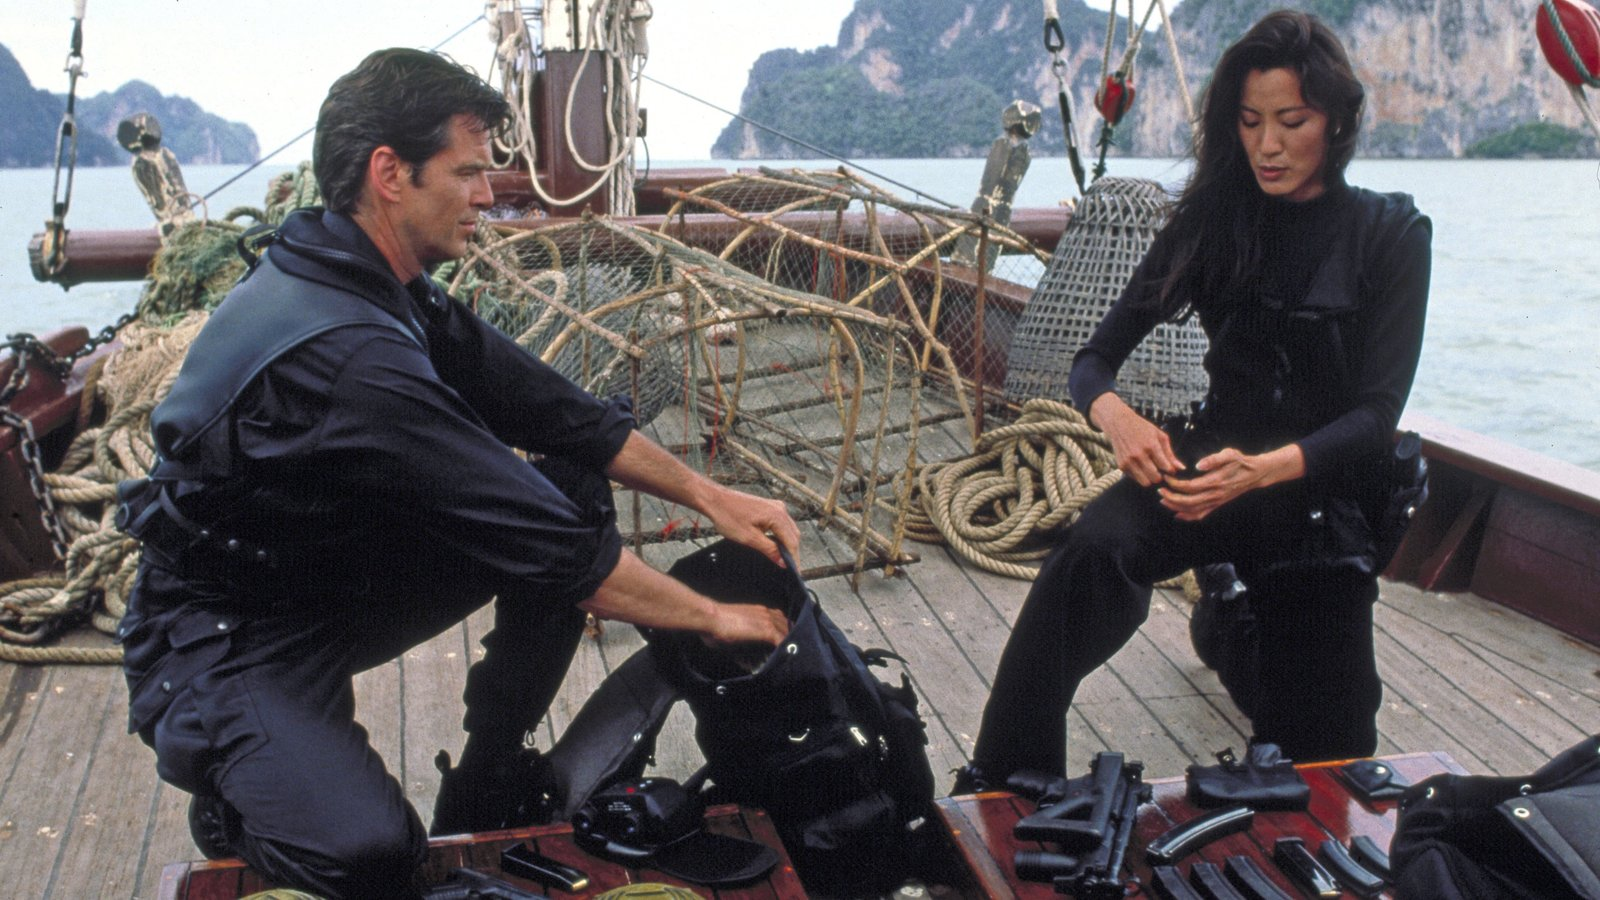 007 (Pierce Brosnan) und Wai Lin (Michelle Yeoh)007 (Pierce Brosnan) und Wai Lin (Michelle Yeoh) – Bild: 1997 Danjaq, LLC and Eighteen Leasing Corporation. All Rights Reserved.